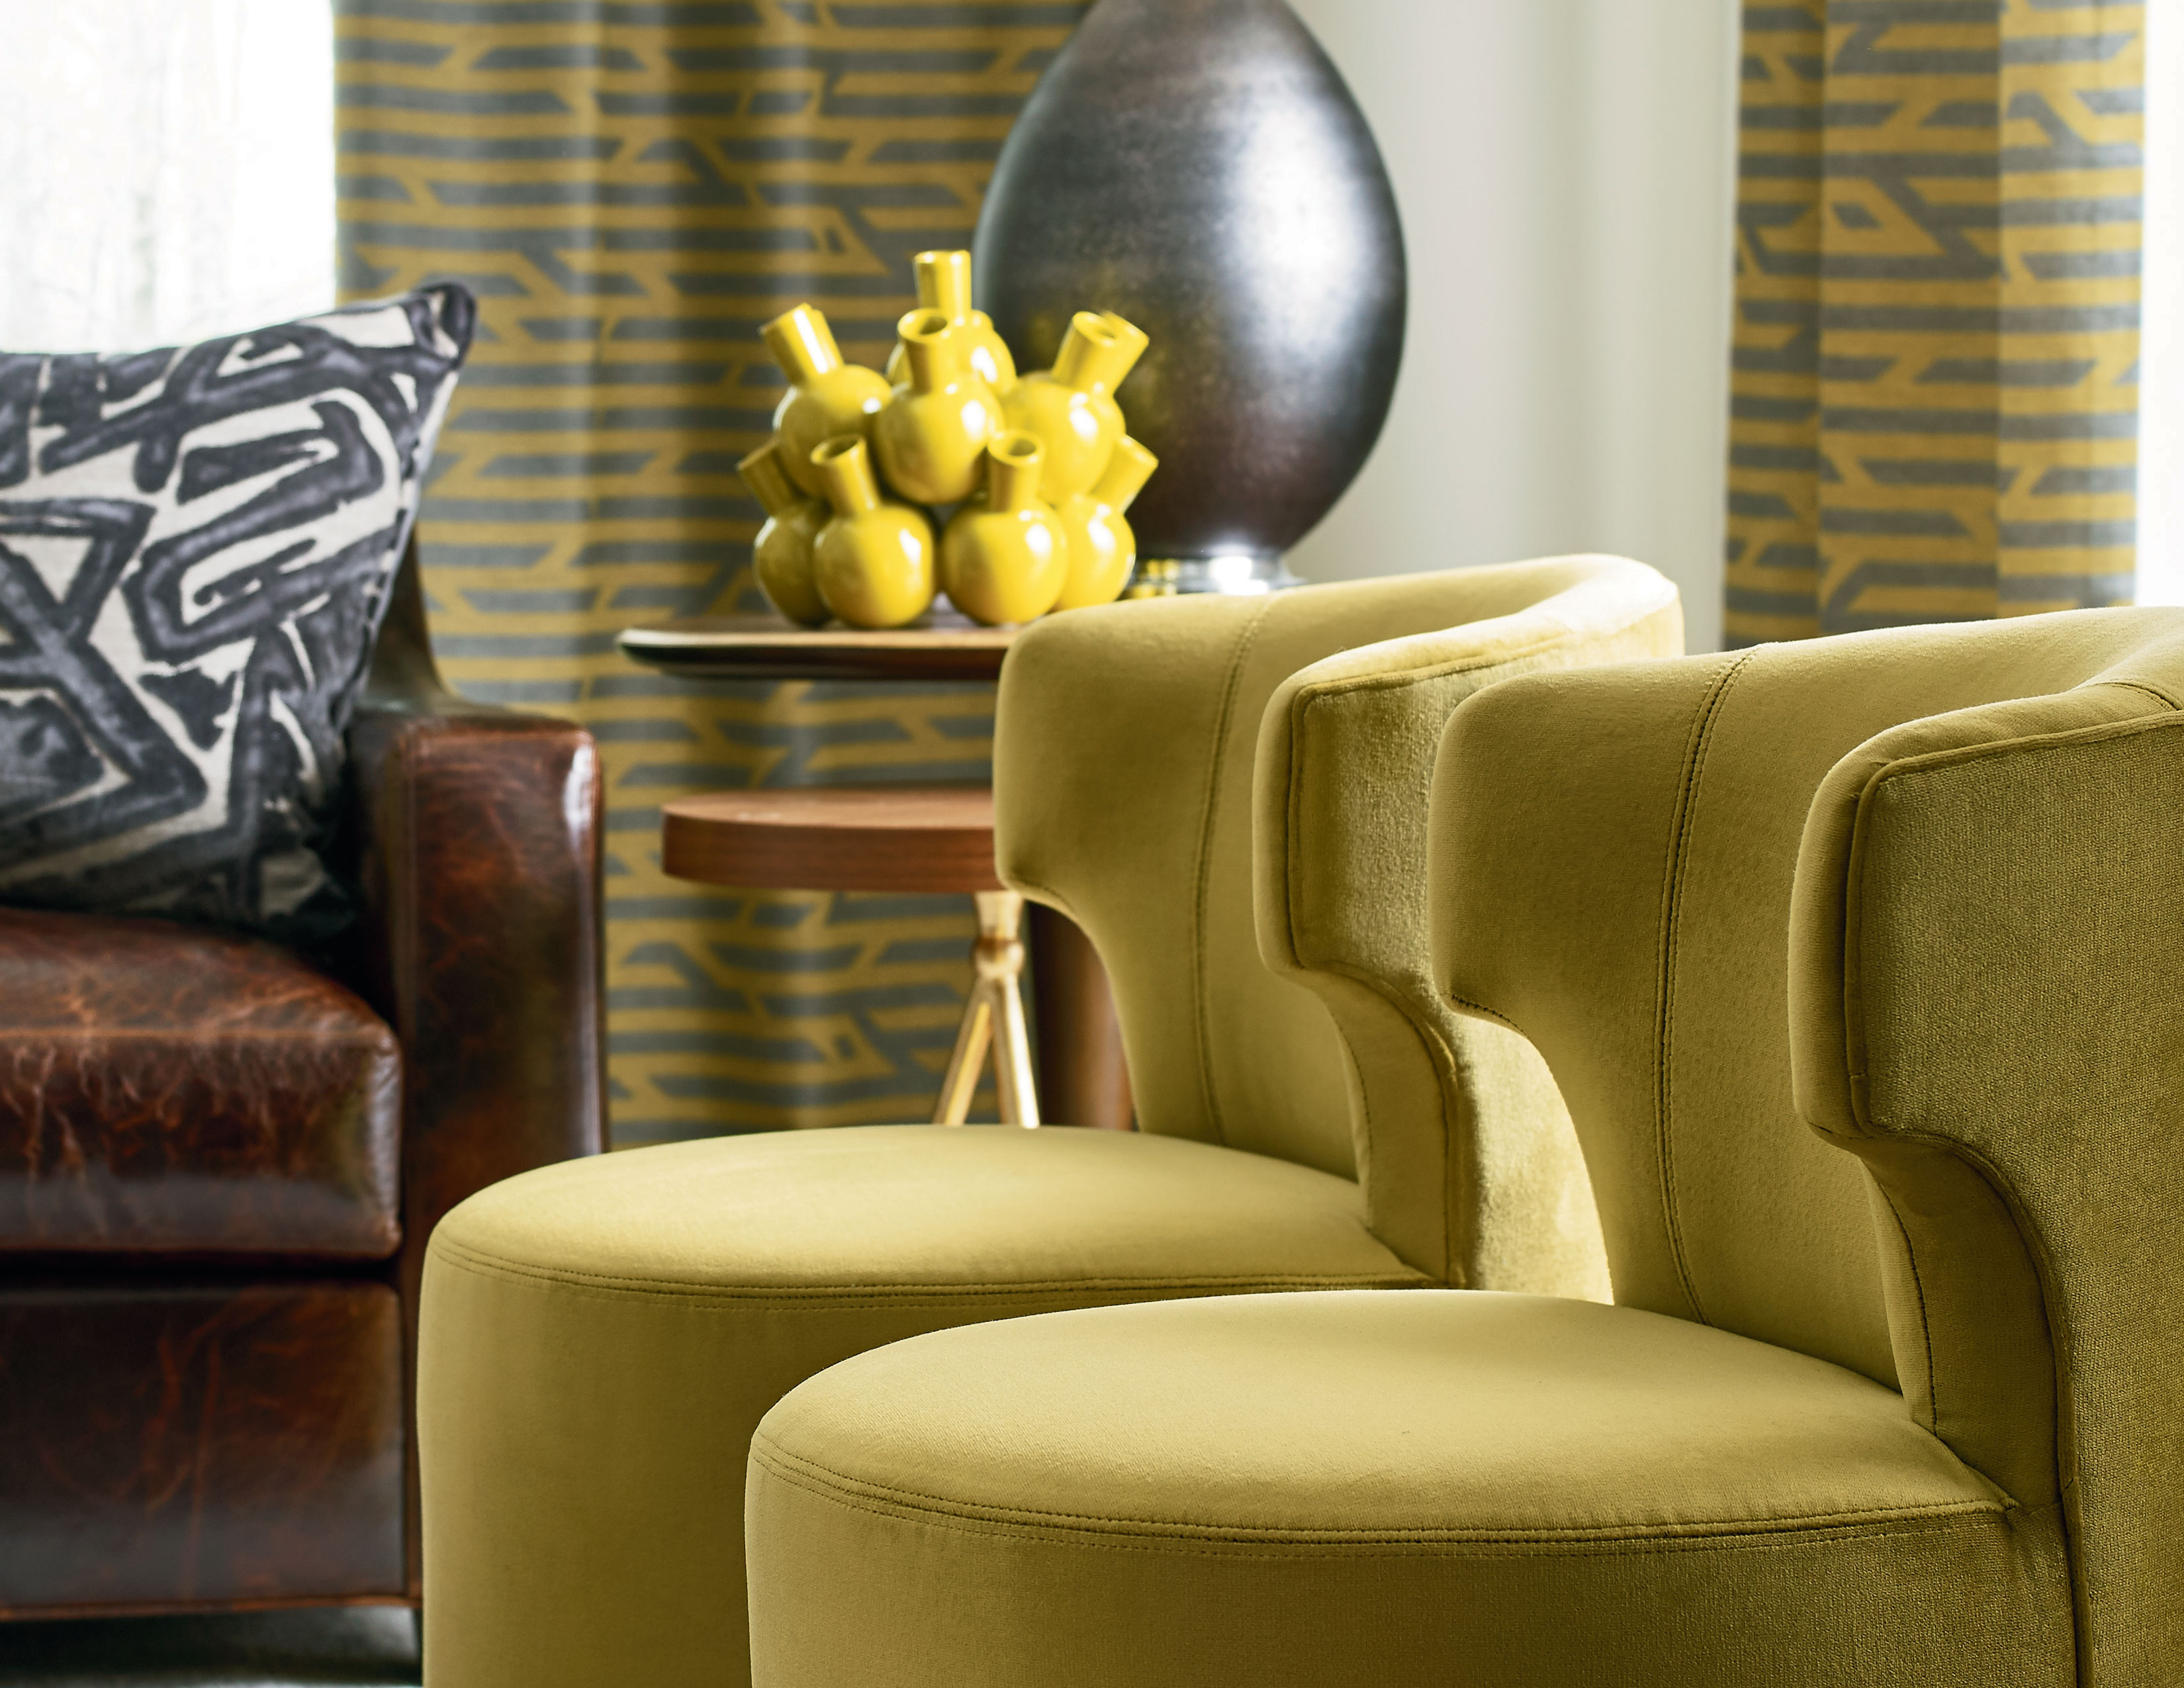 Crofton Swivel Chair Made To Order Fabrics Sofas And Sectionals